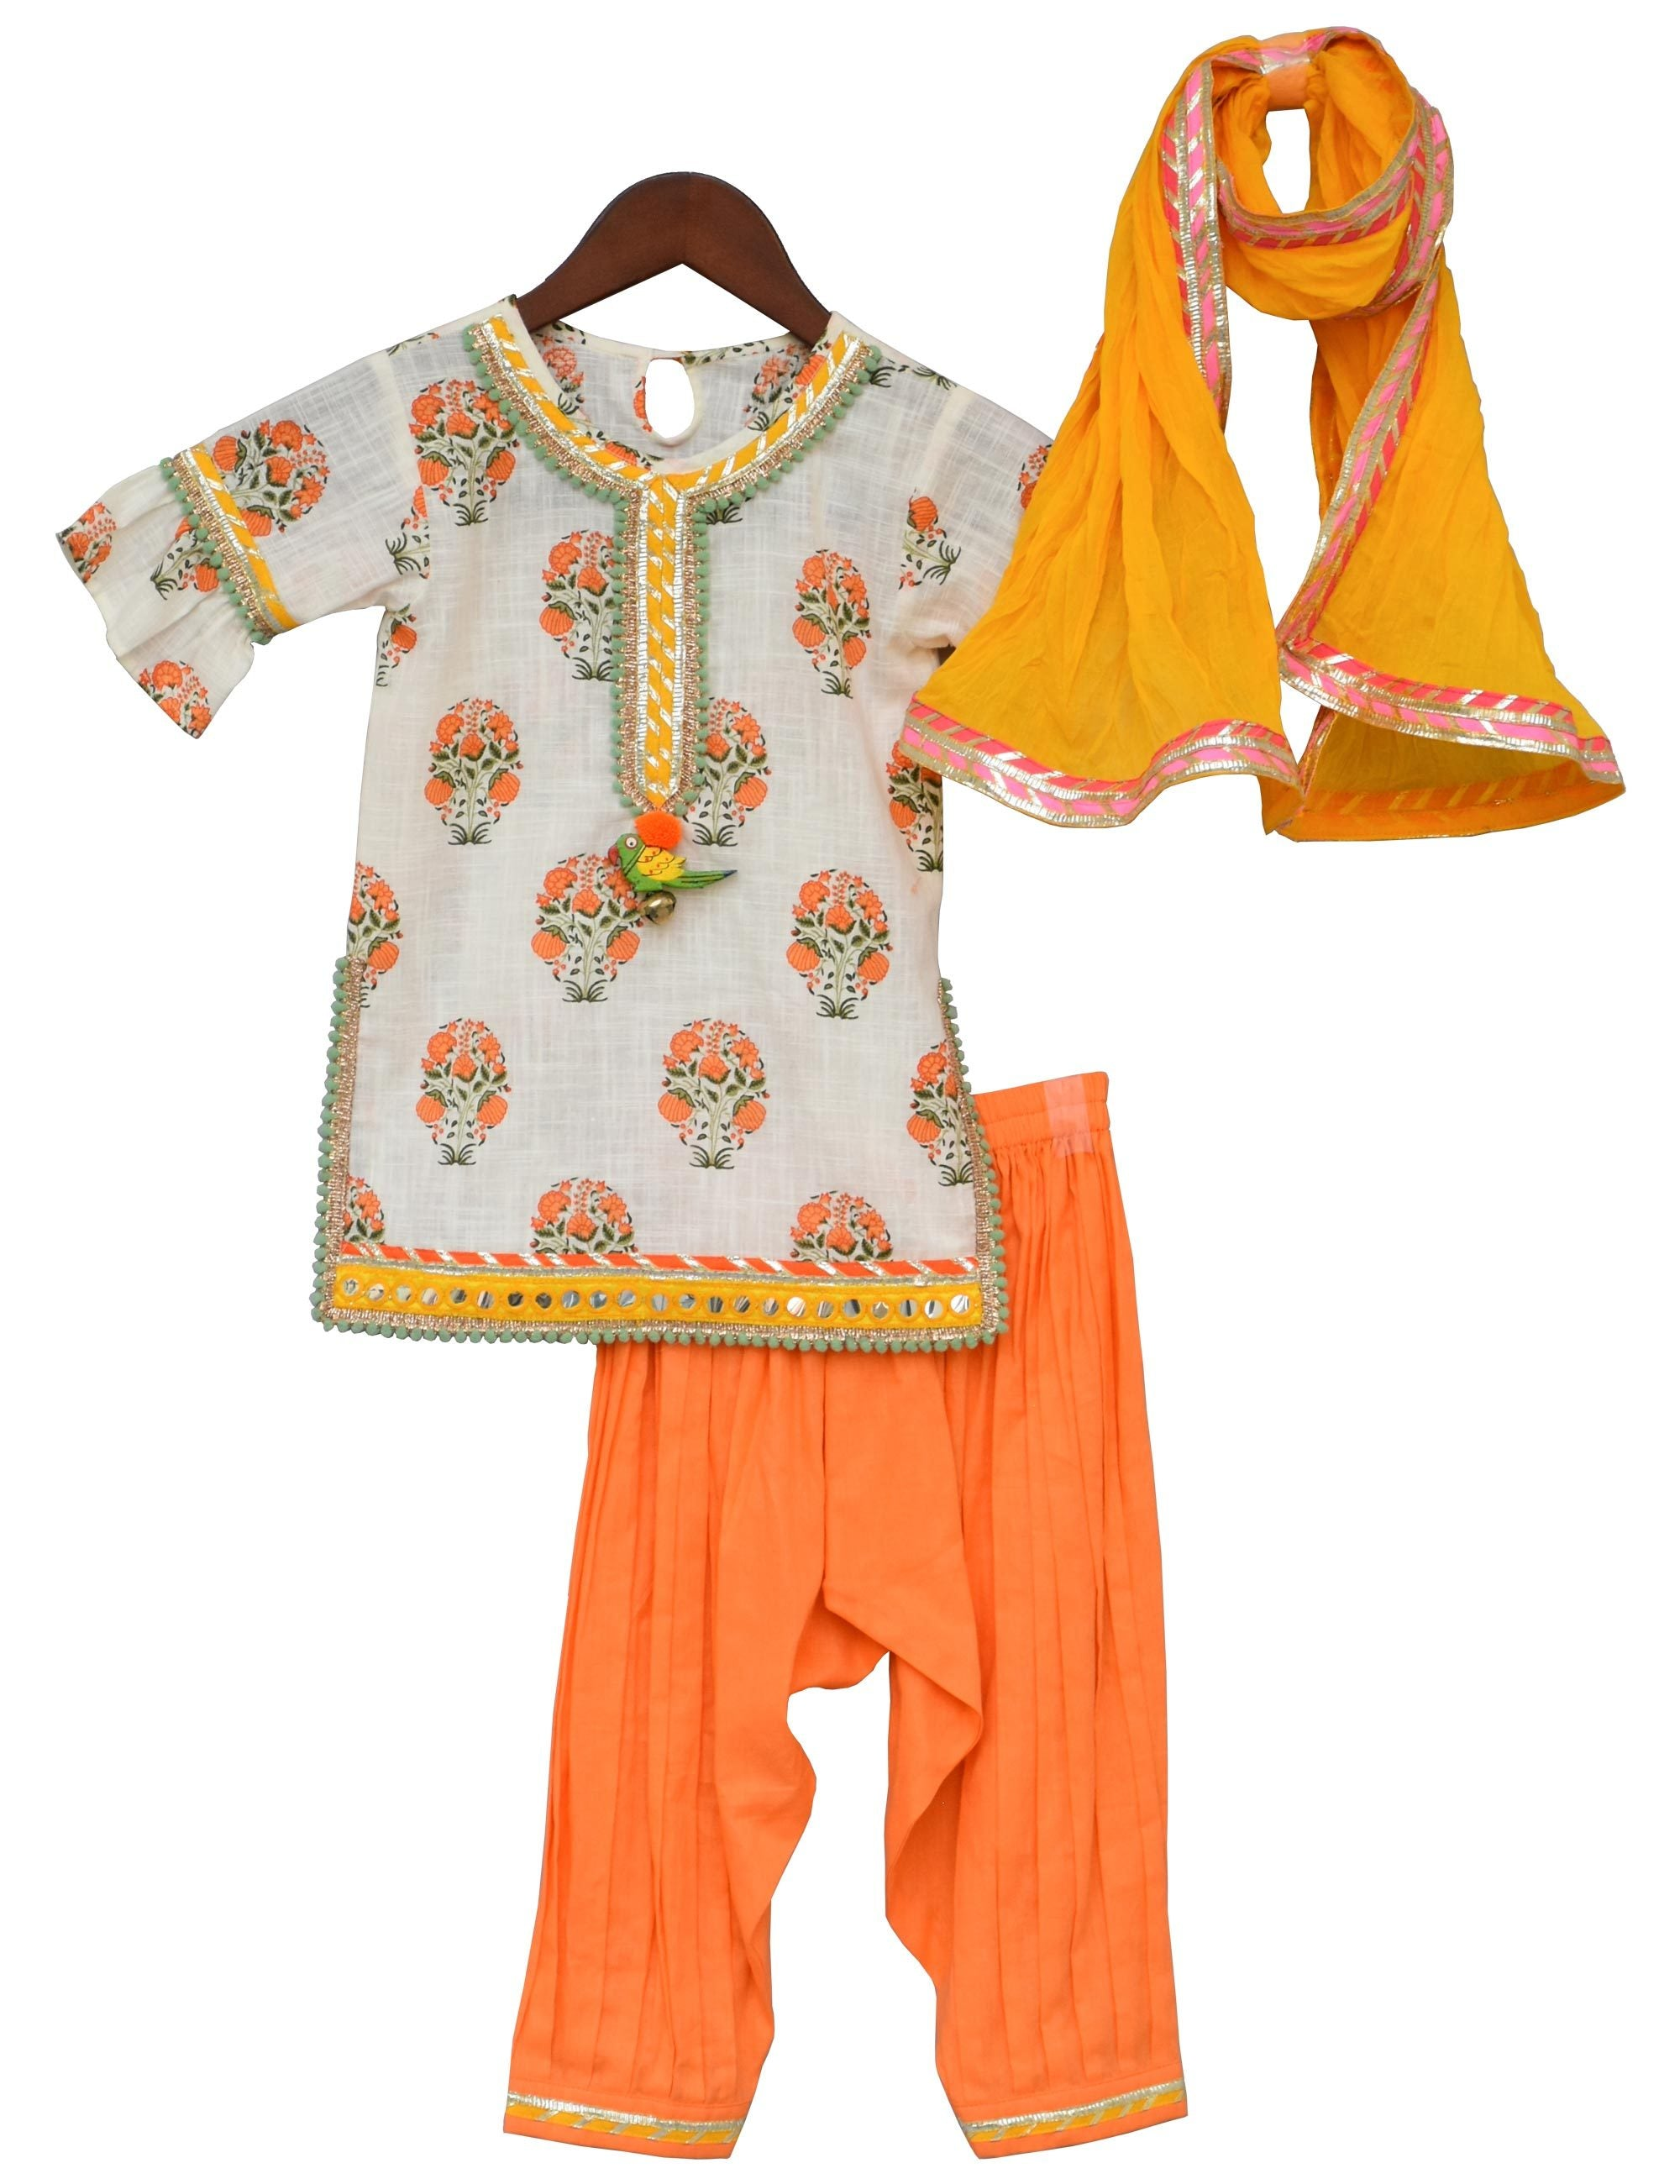 Off-white Printed Kurti with Orange Salwar